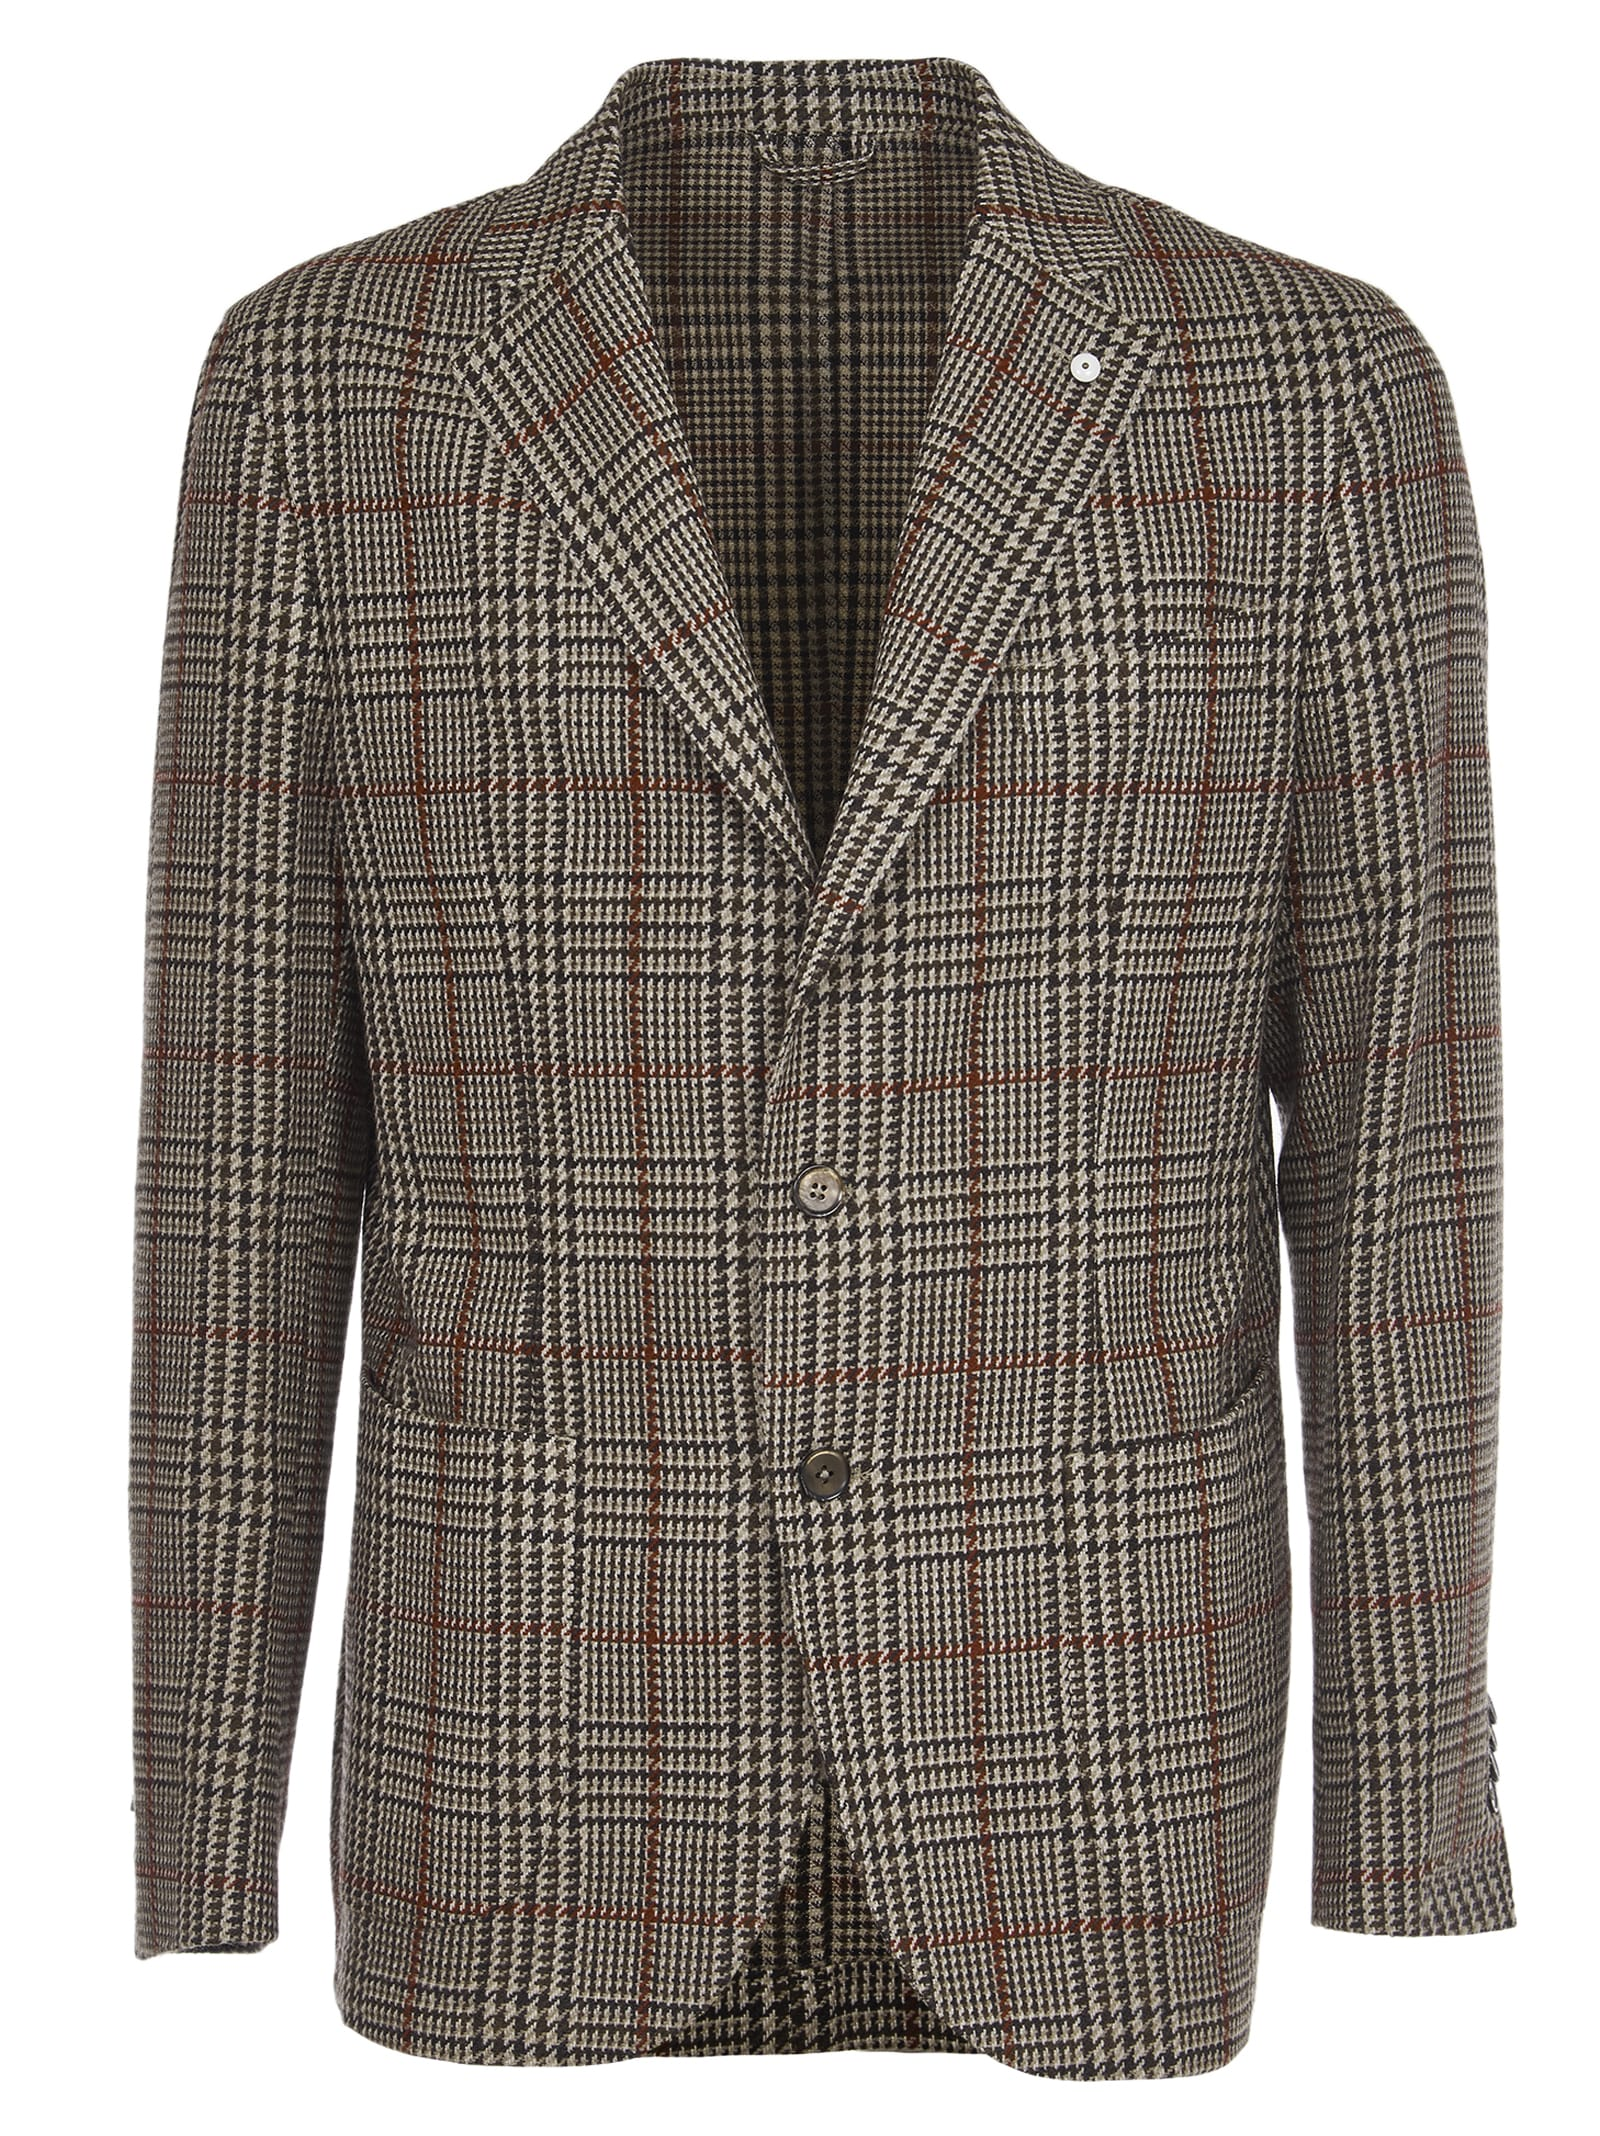 1911 Brown Checked Wool Jacket